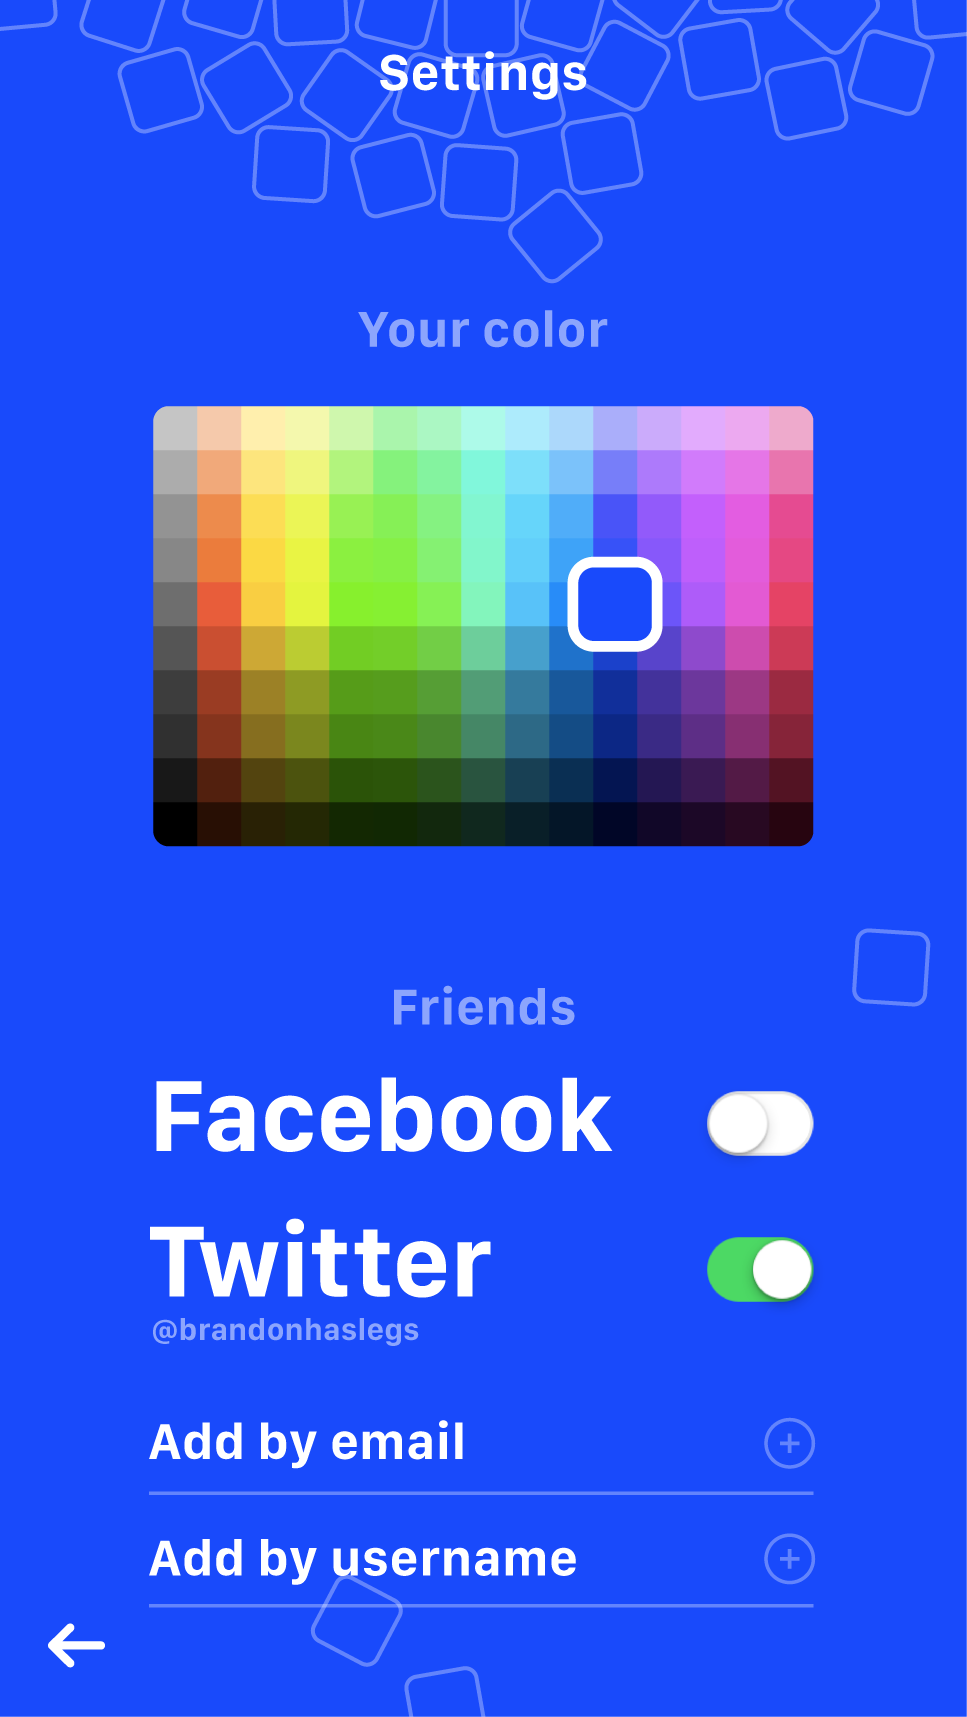 Adding friends, and changing your background.